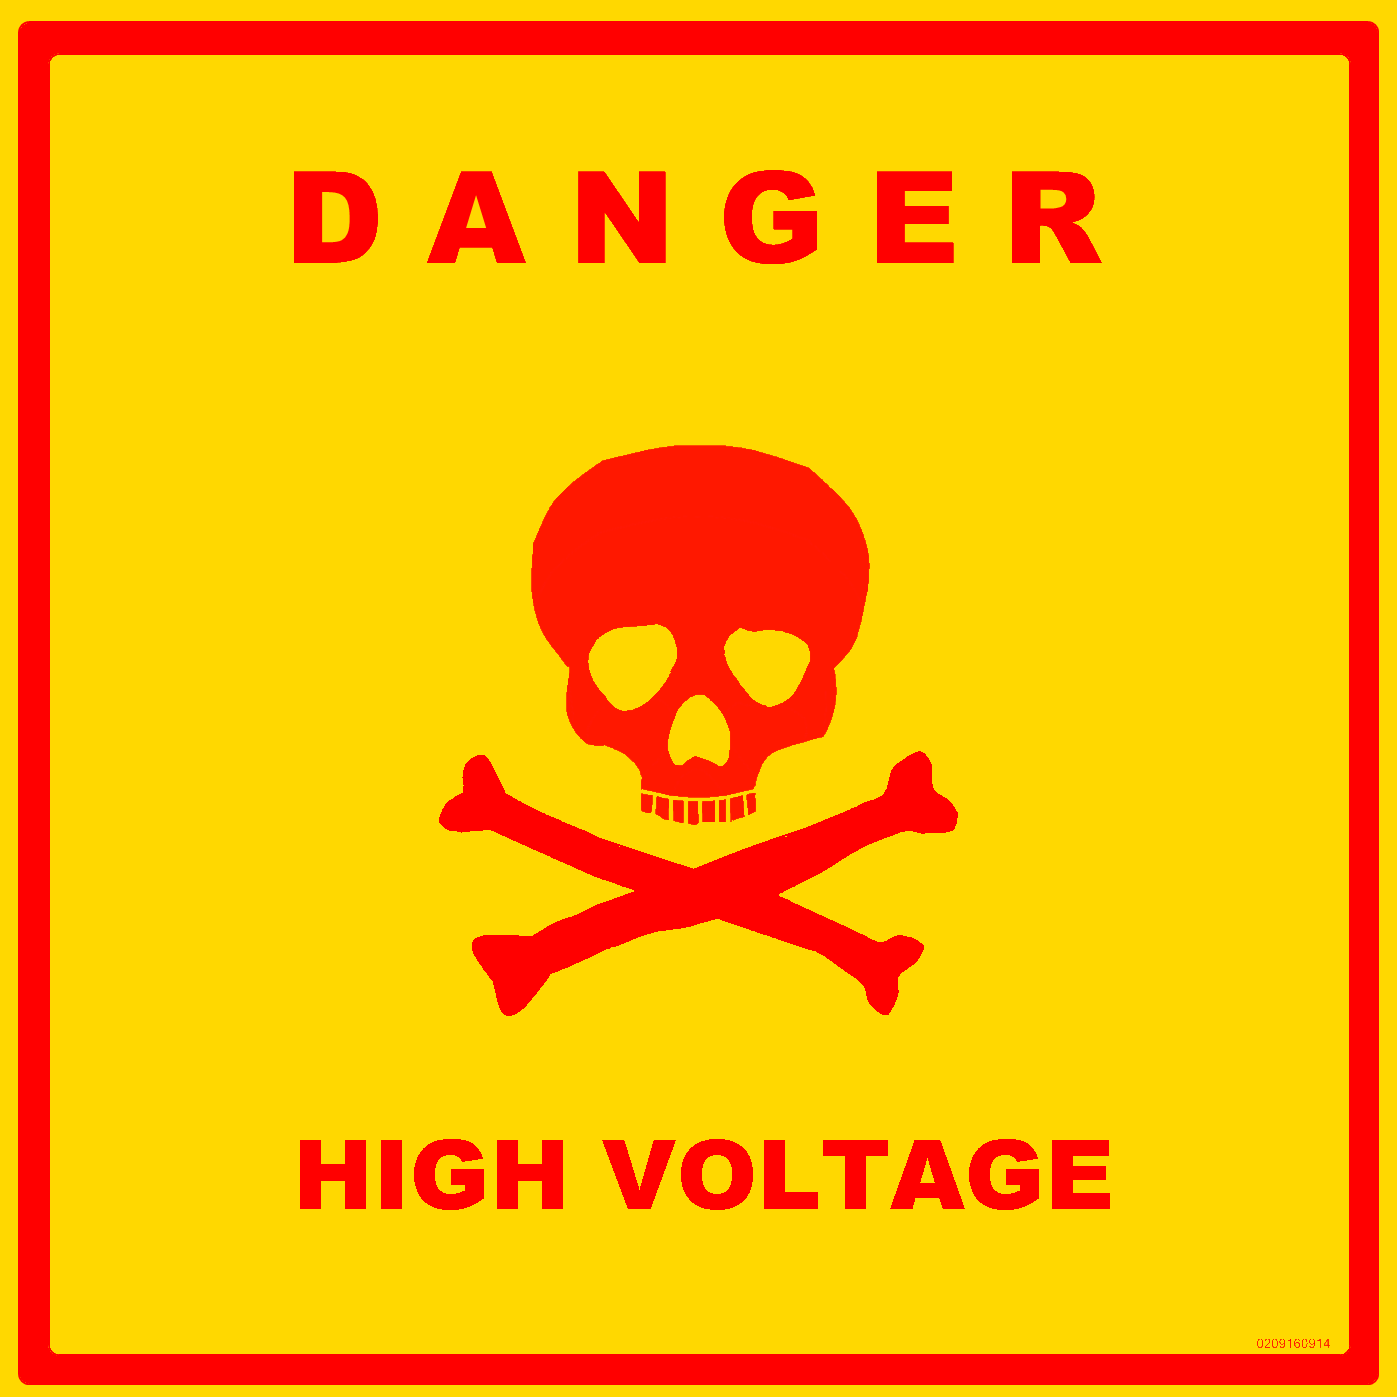 Science laboratory safety signs high voltage and safety high voltage sign this sign warns of a high voltage hazard buycottarizona Images